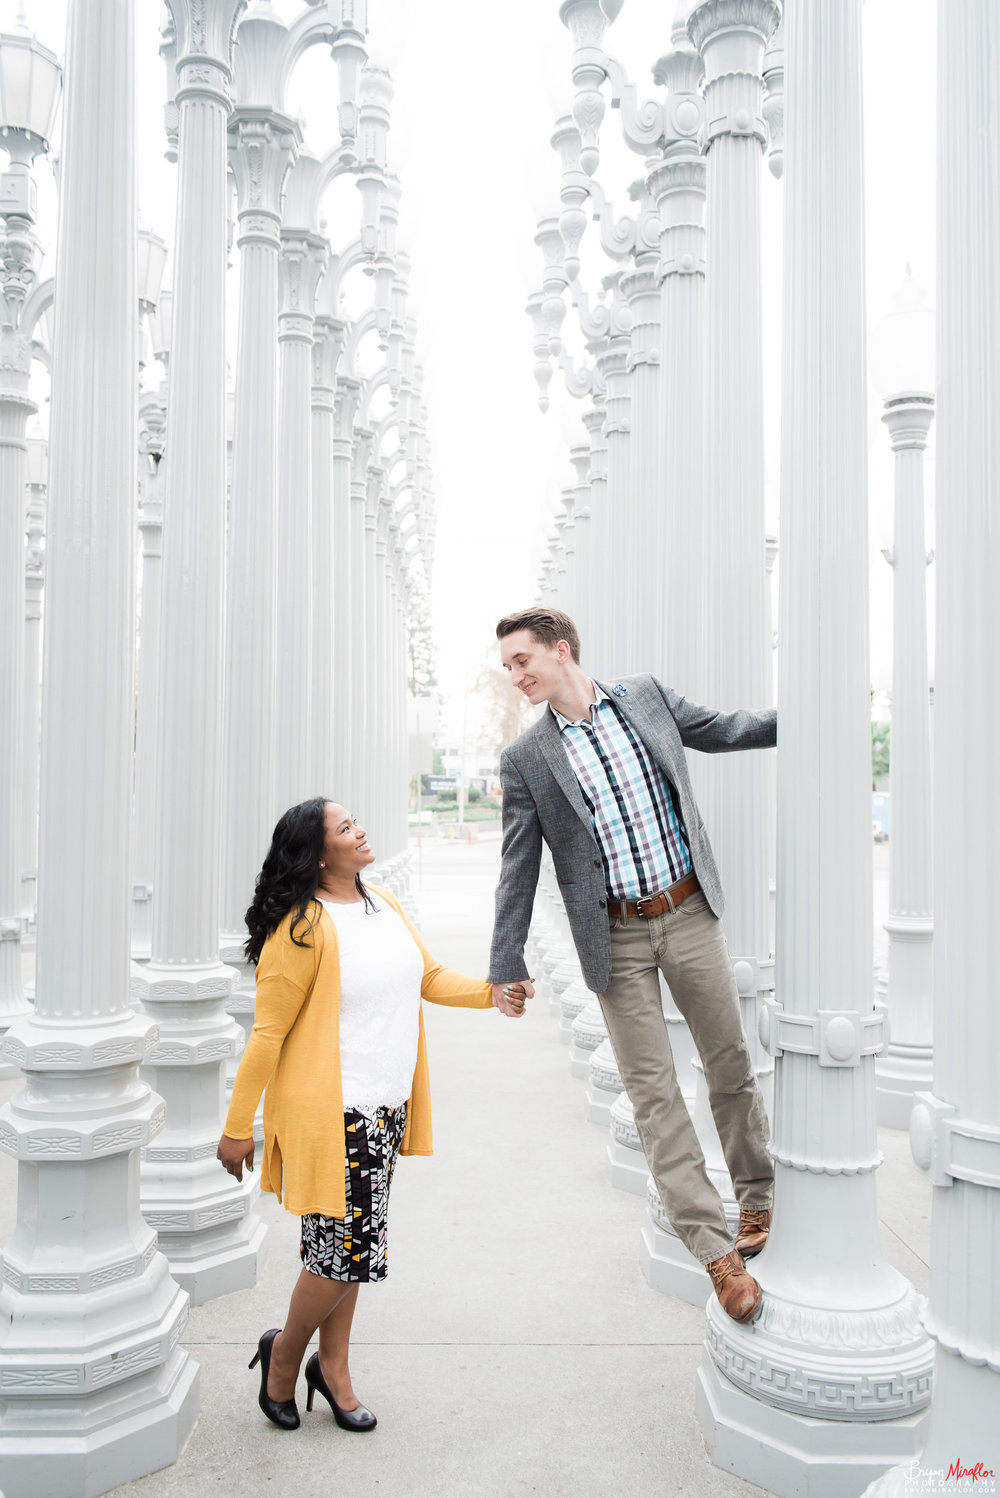 Bryan-Miraflor-Photography-Vanessa-Tommy-LACMA-DTLA-Engagement-Photoshoot-20161210-103.jpg